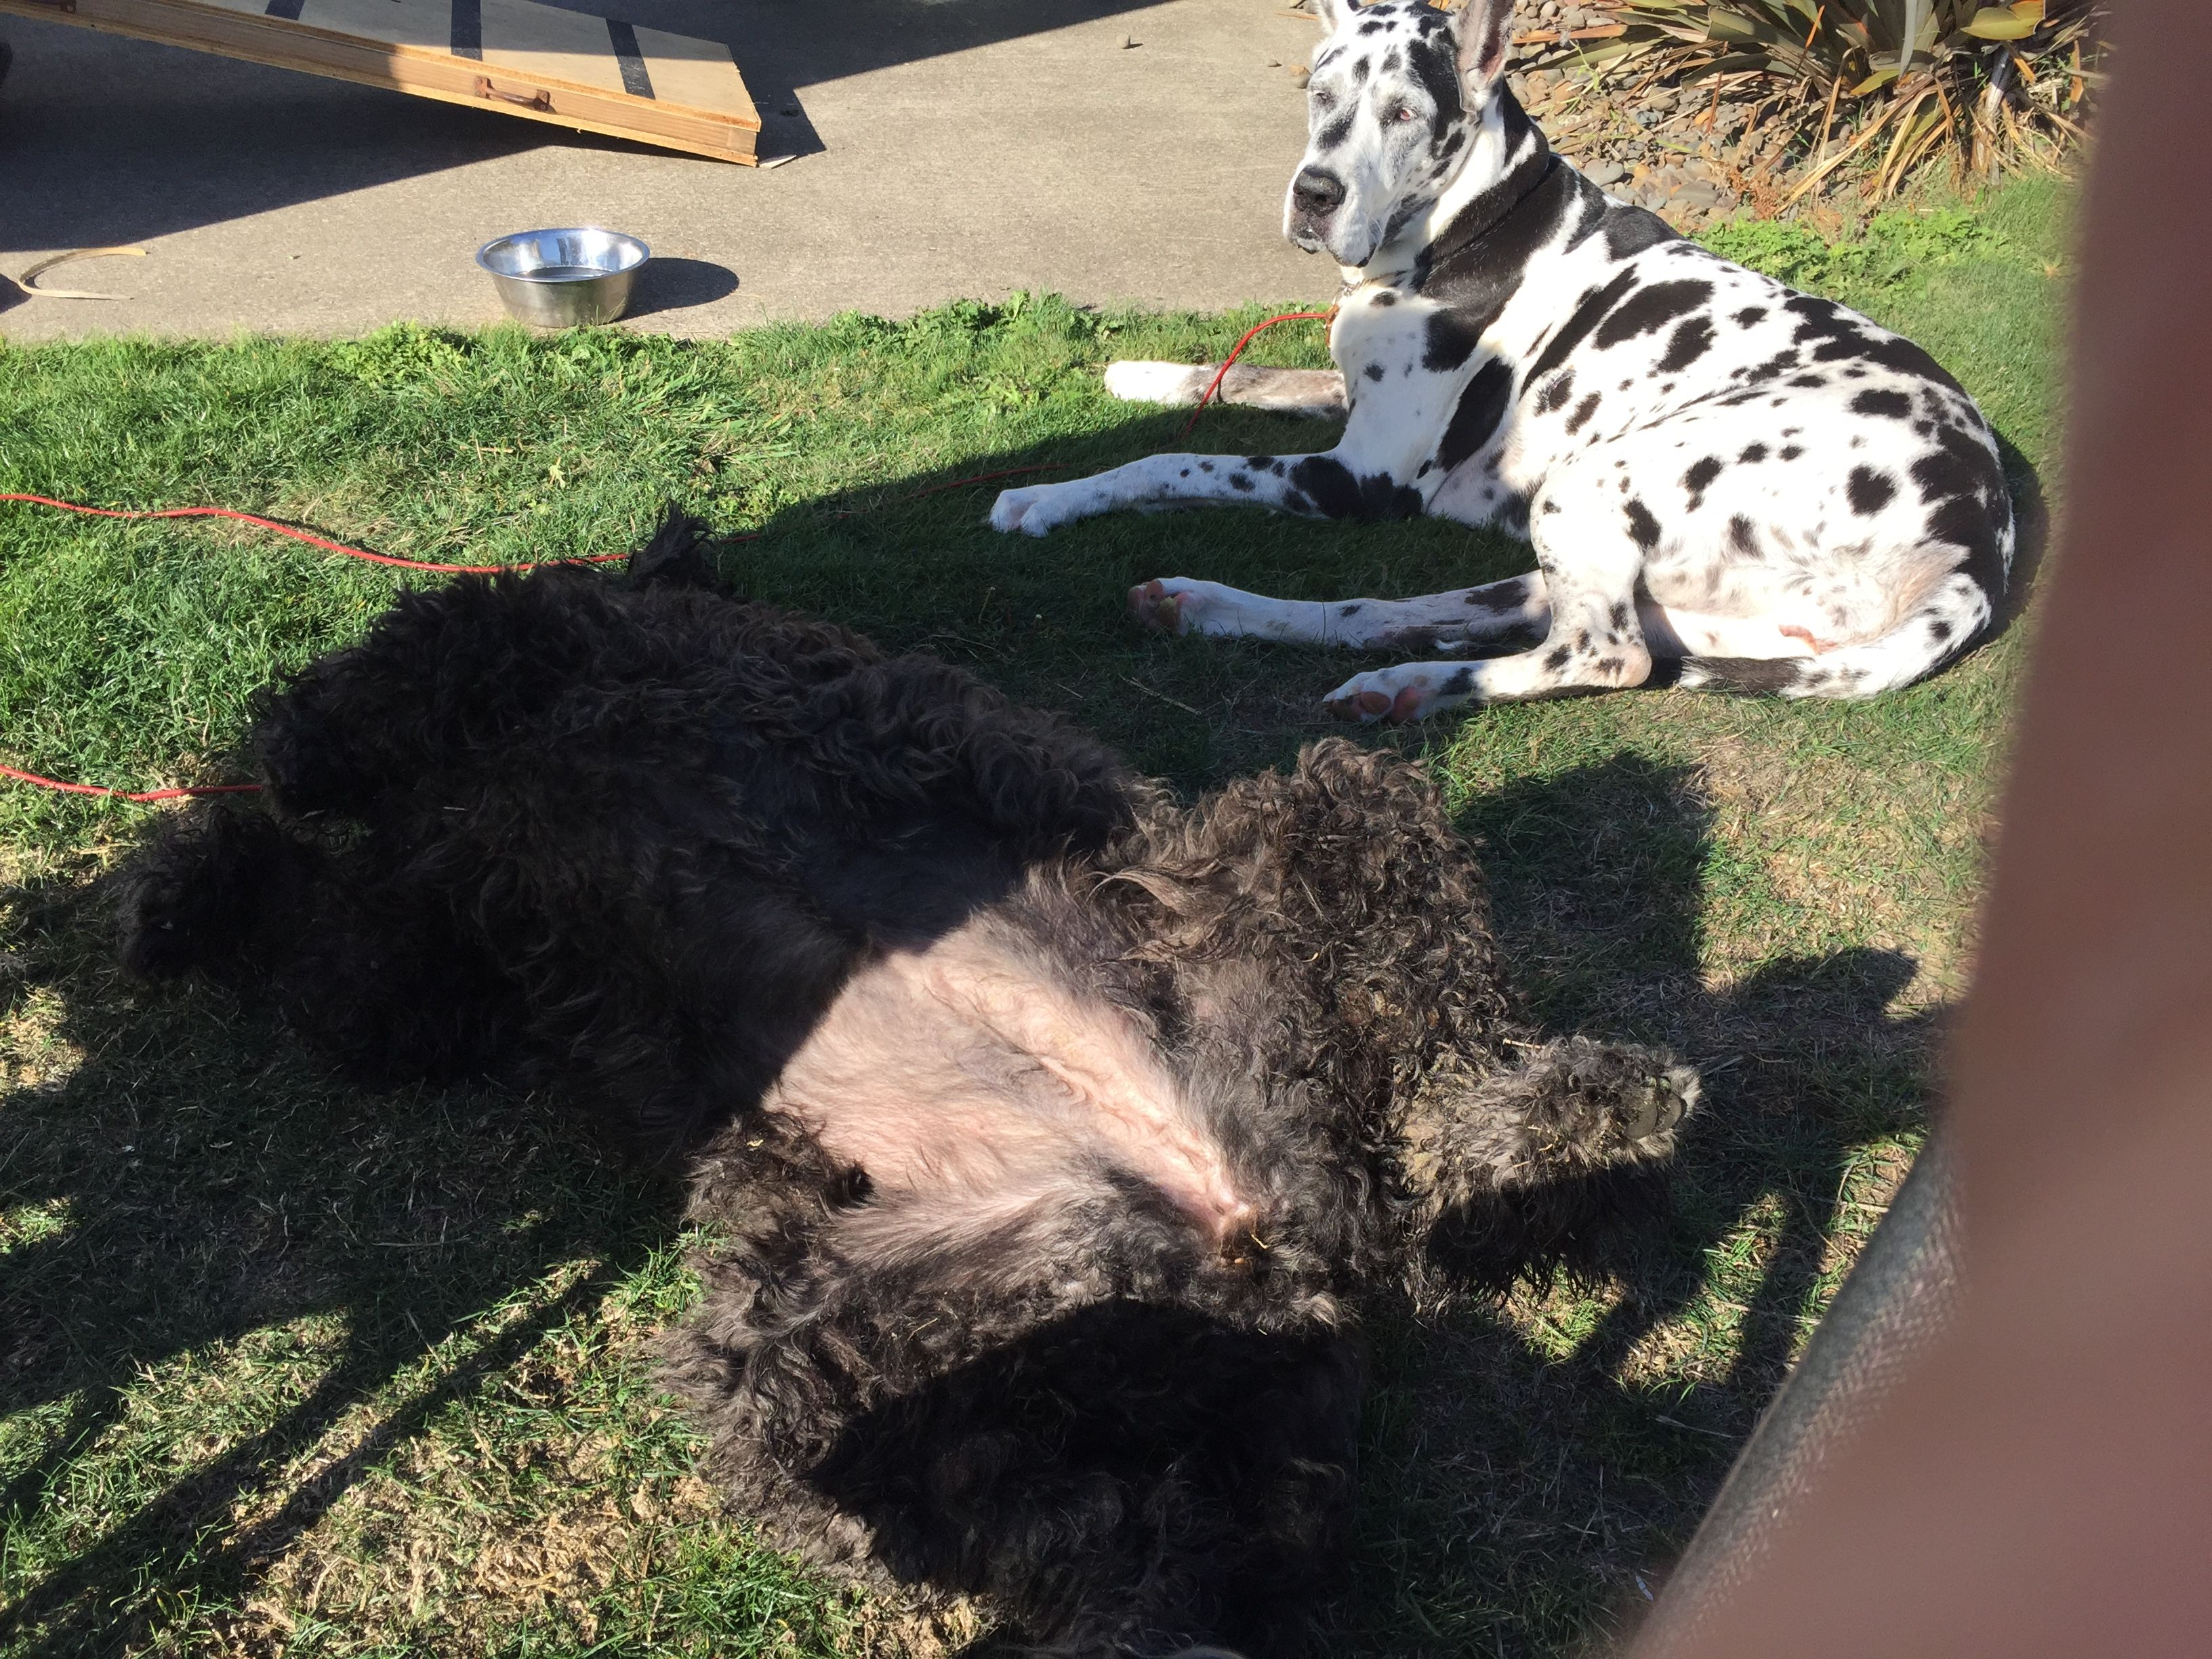 Sophie The Newfiepoo Sunbathing With Pal Great Dane Maggie Moo At